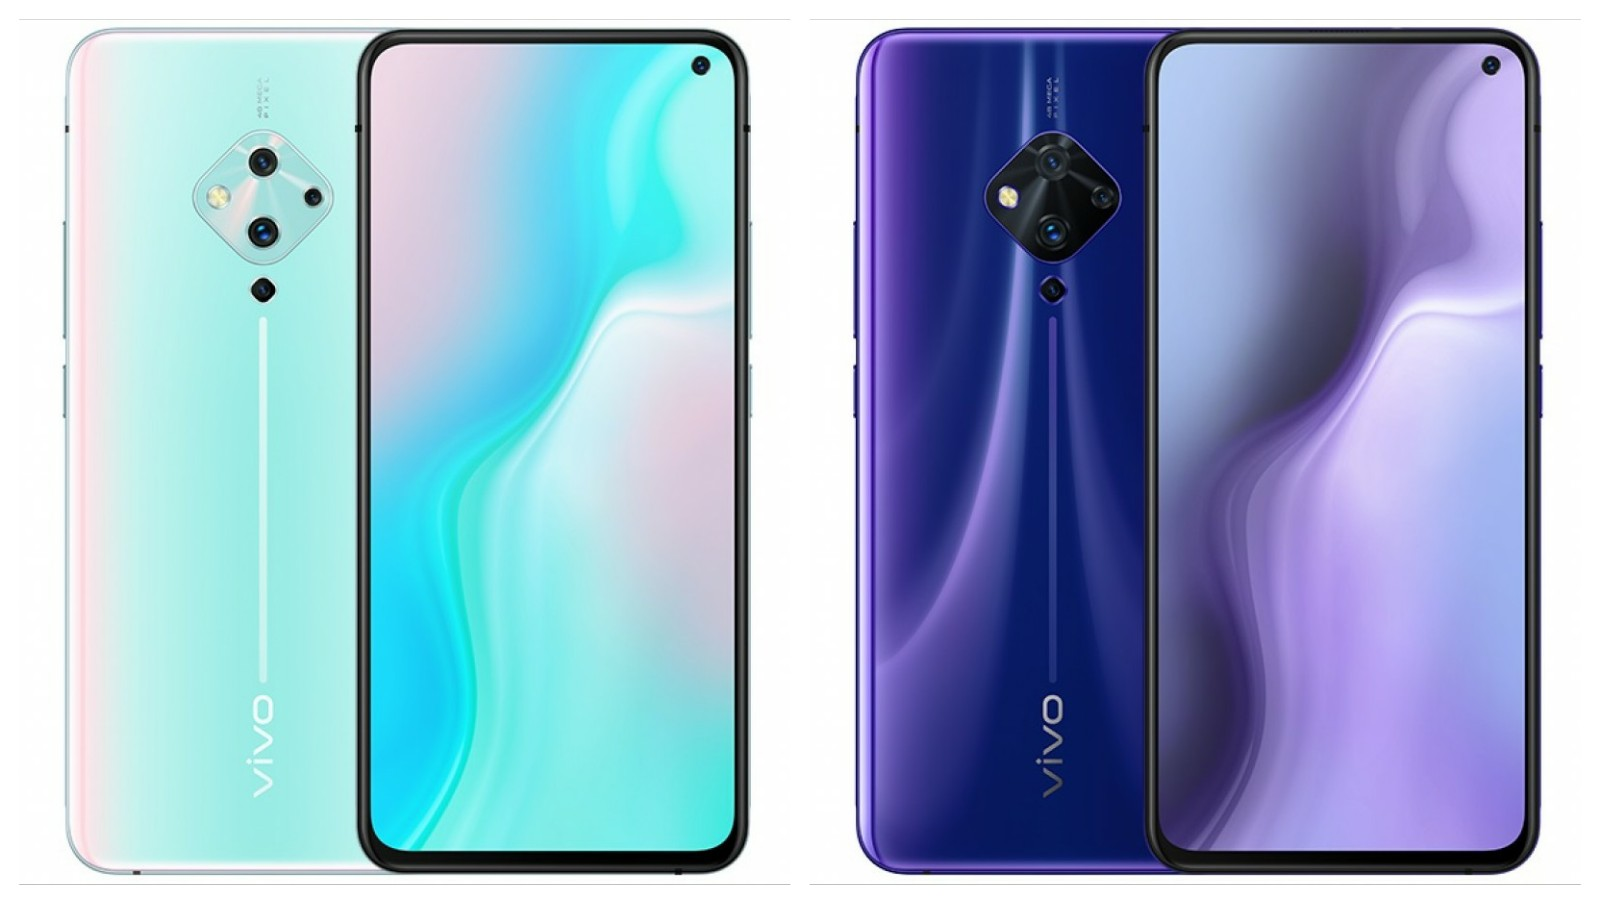 Vivo S5 Launched With 48MP Quad-Cameras & Punch-Hole AMOLED Display